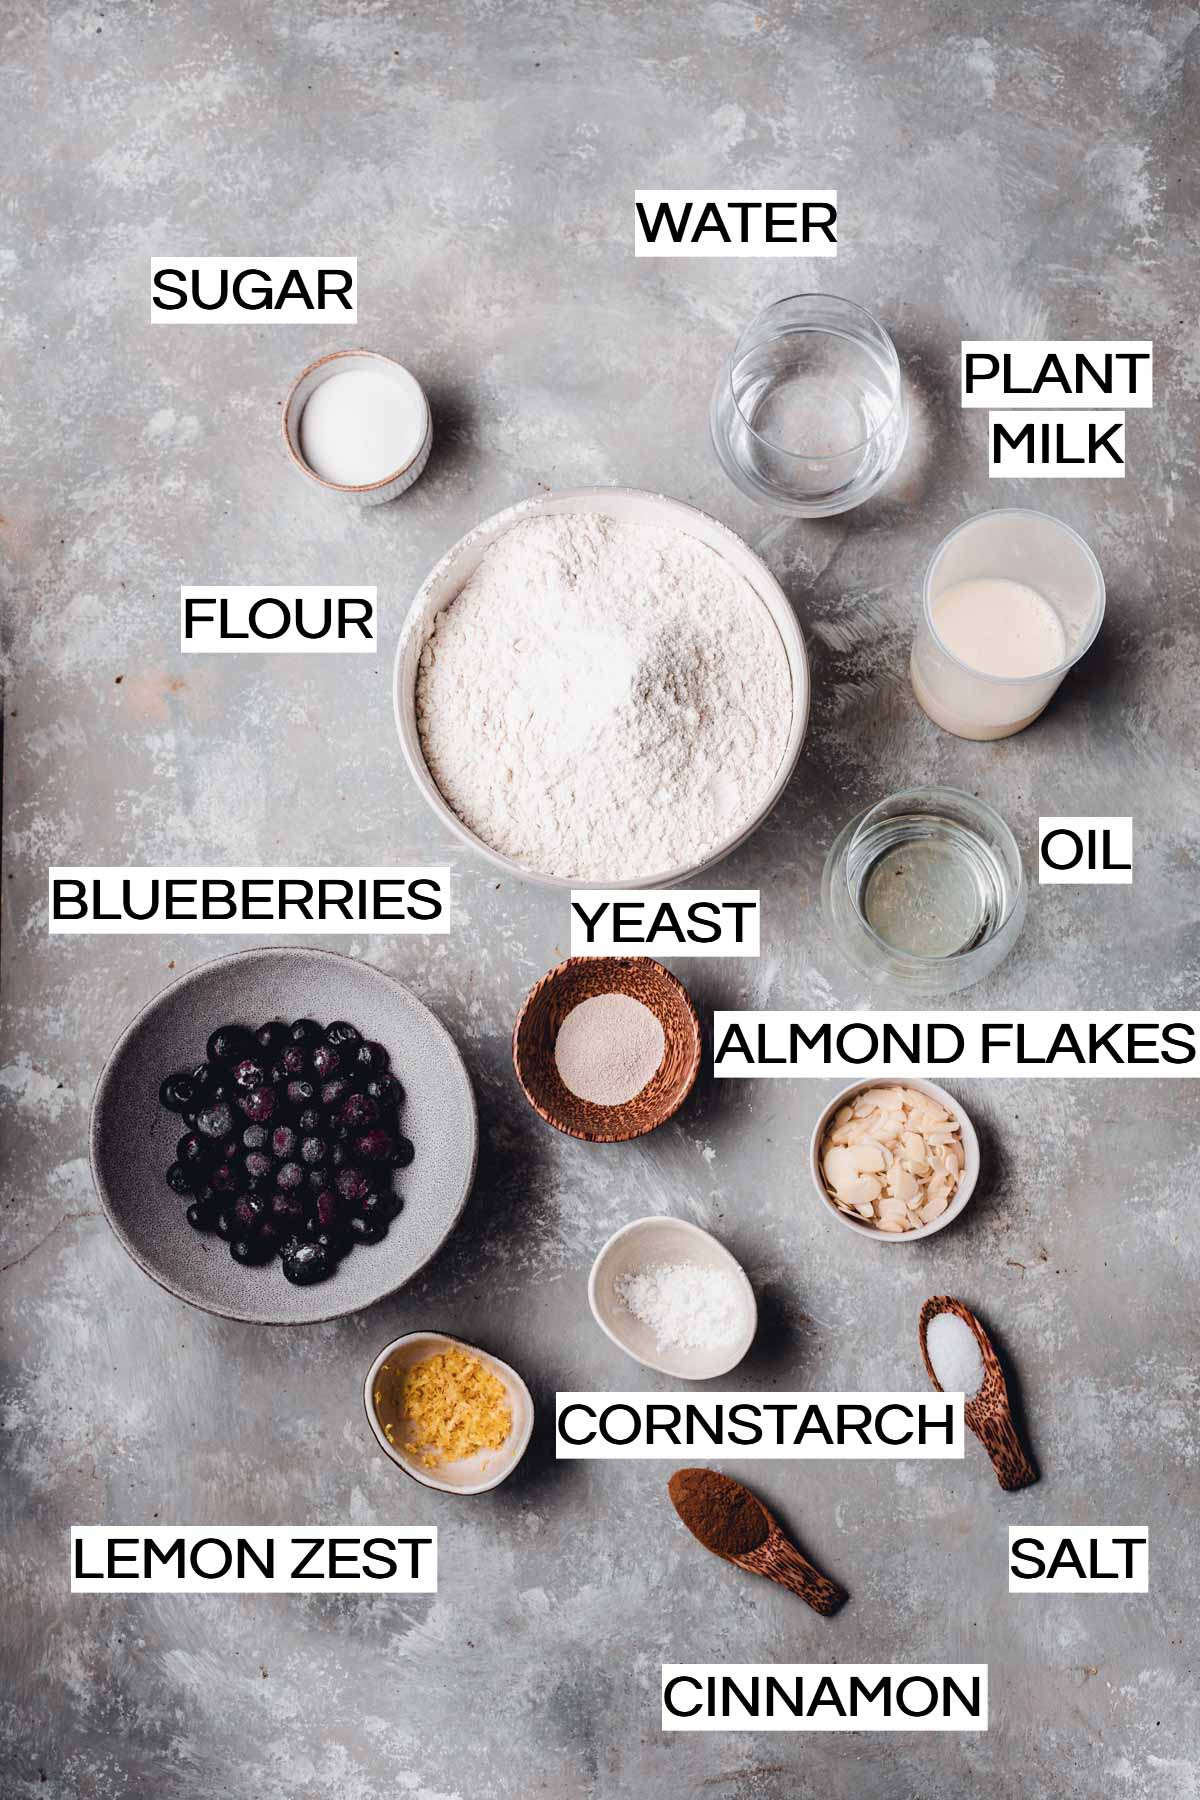 All the ingredients needed to make blueberry buns placed in cups and bowls.